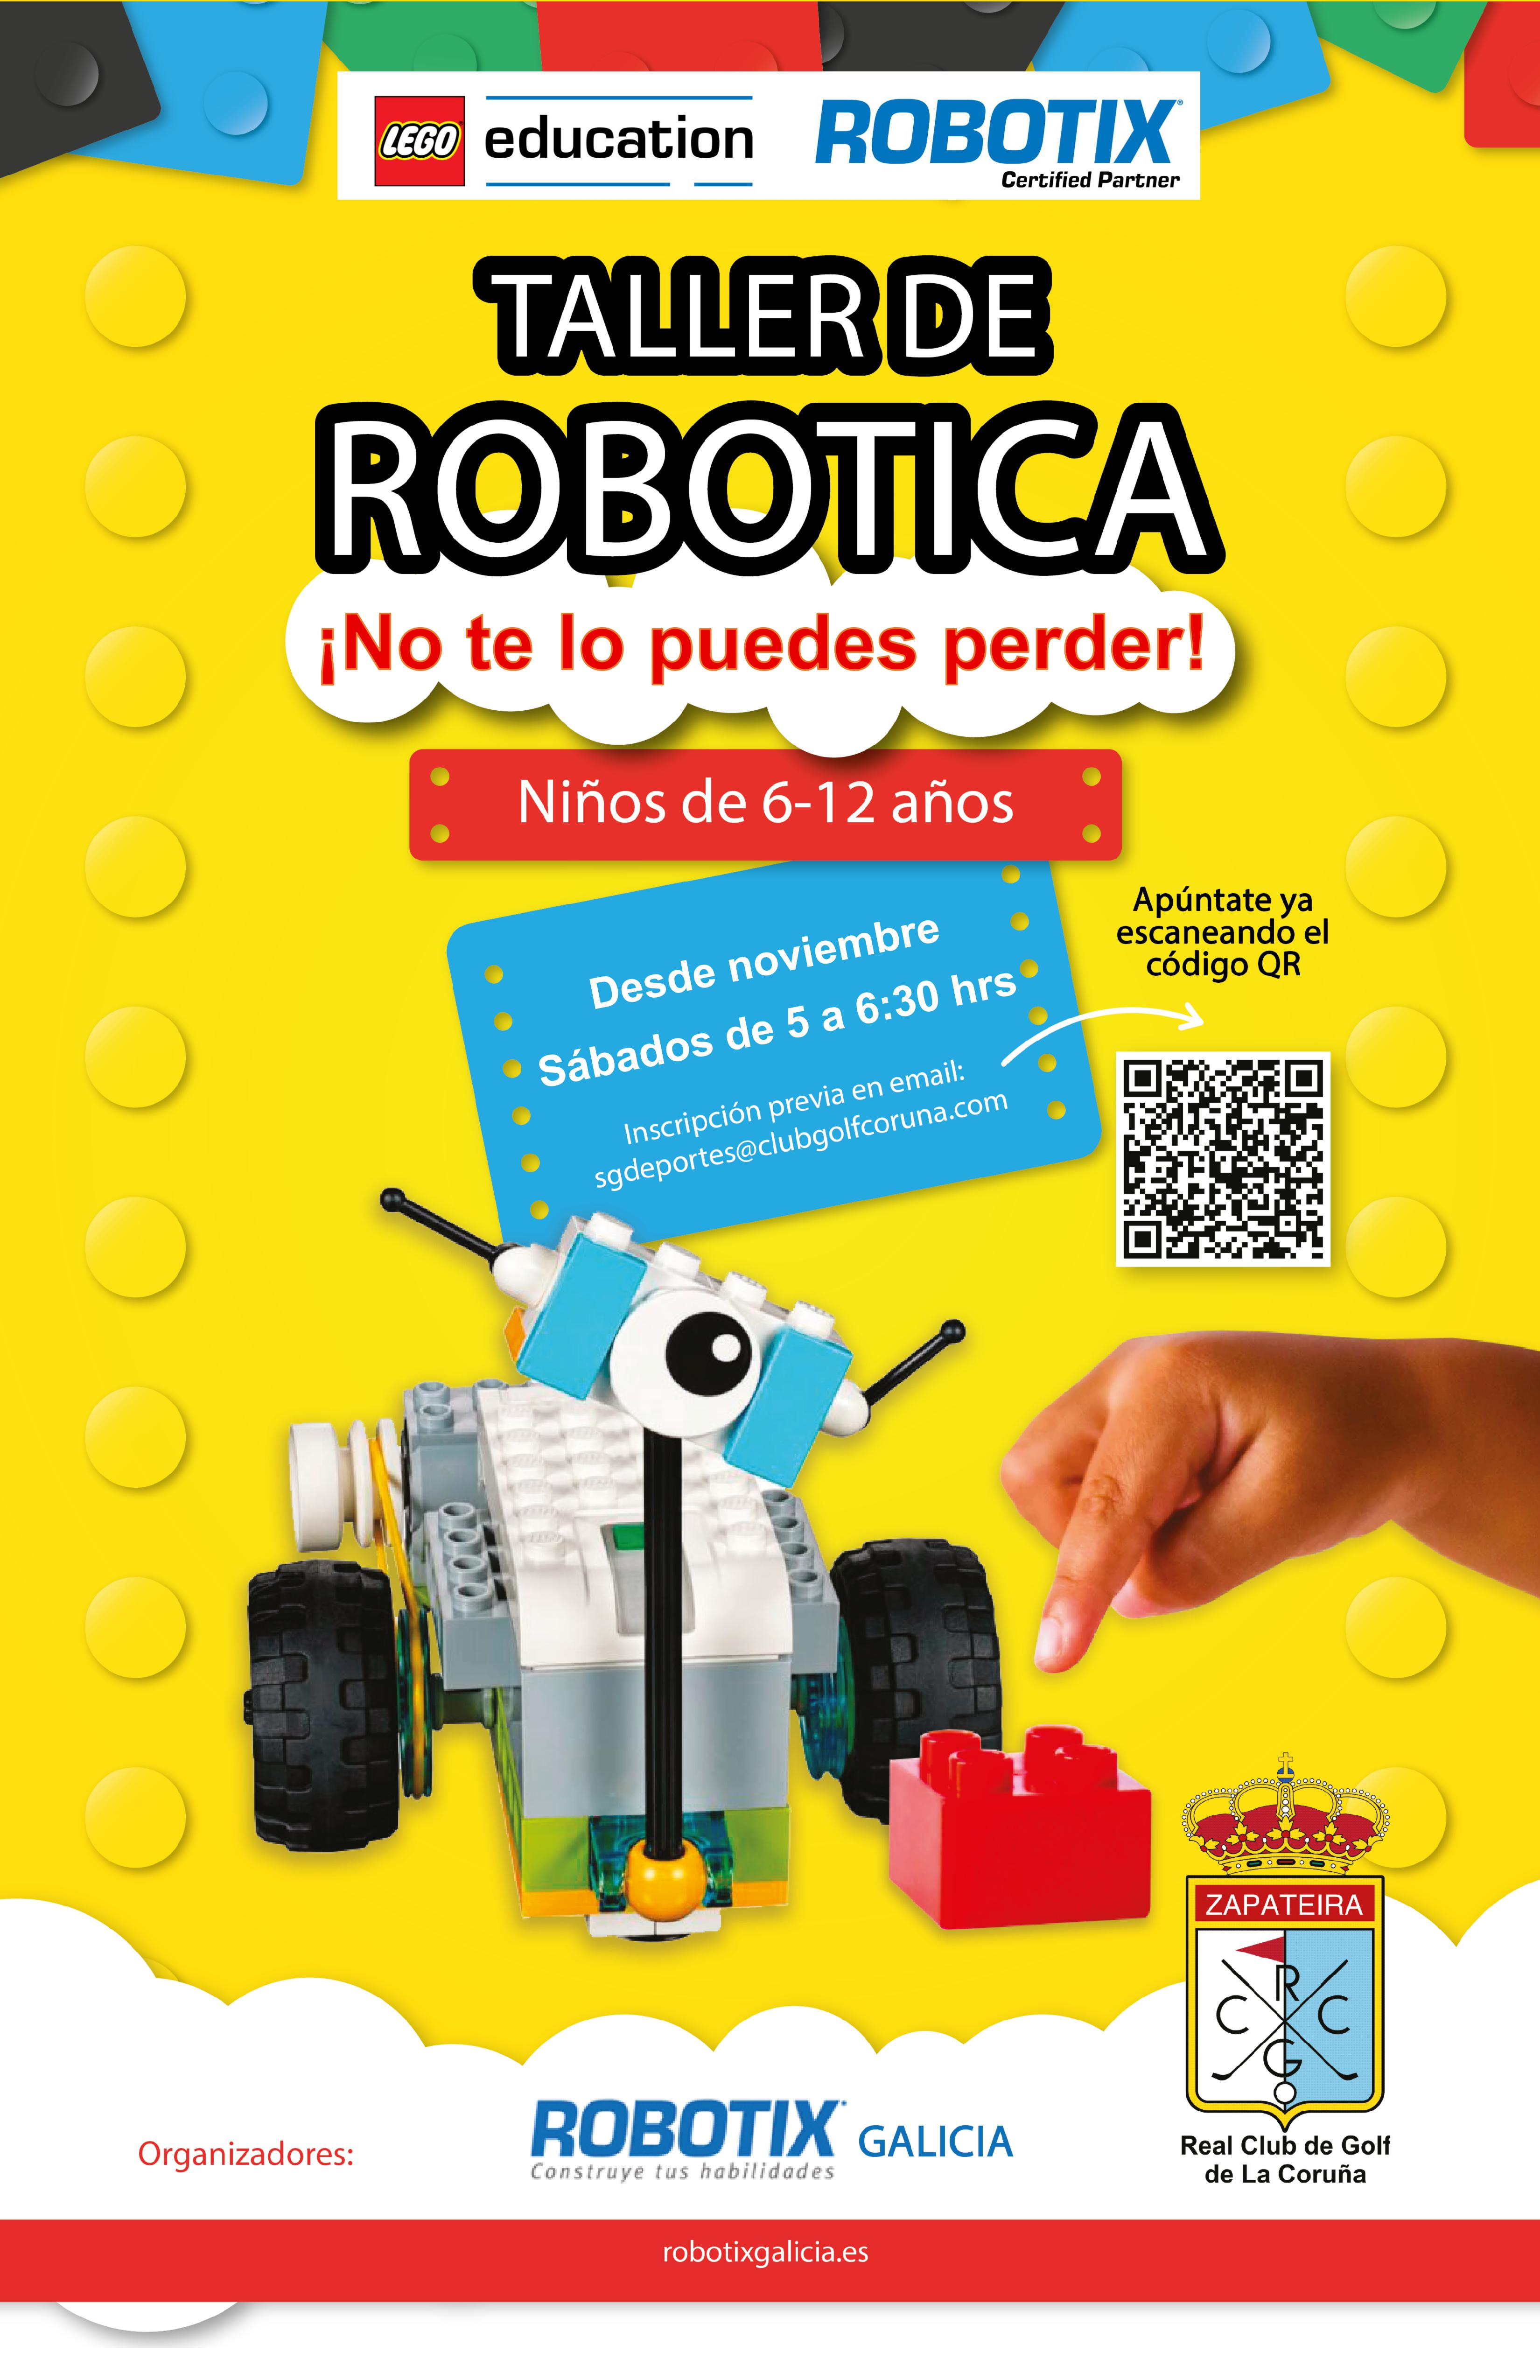 Talleres de robótica: Robotix by Lego education